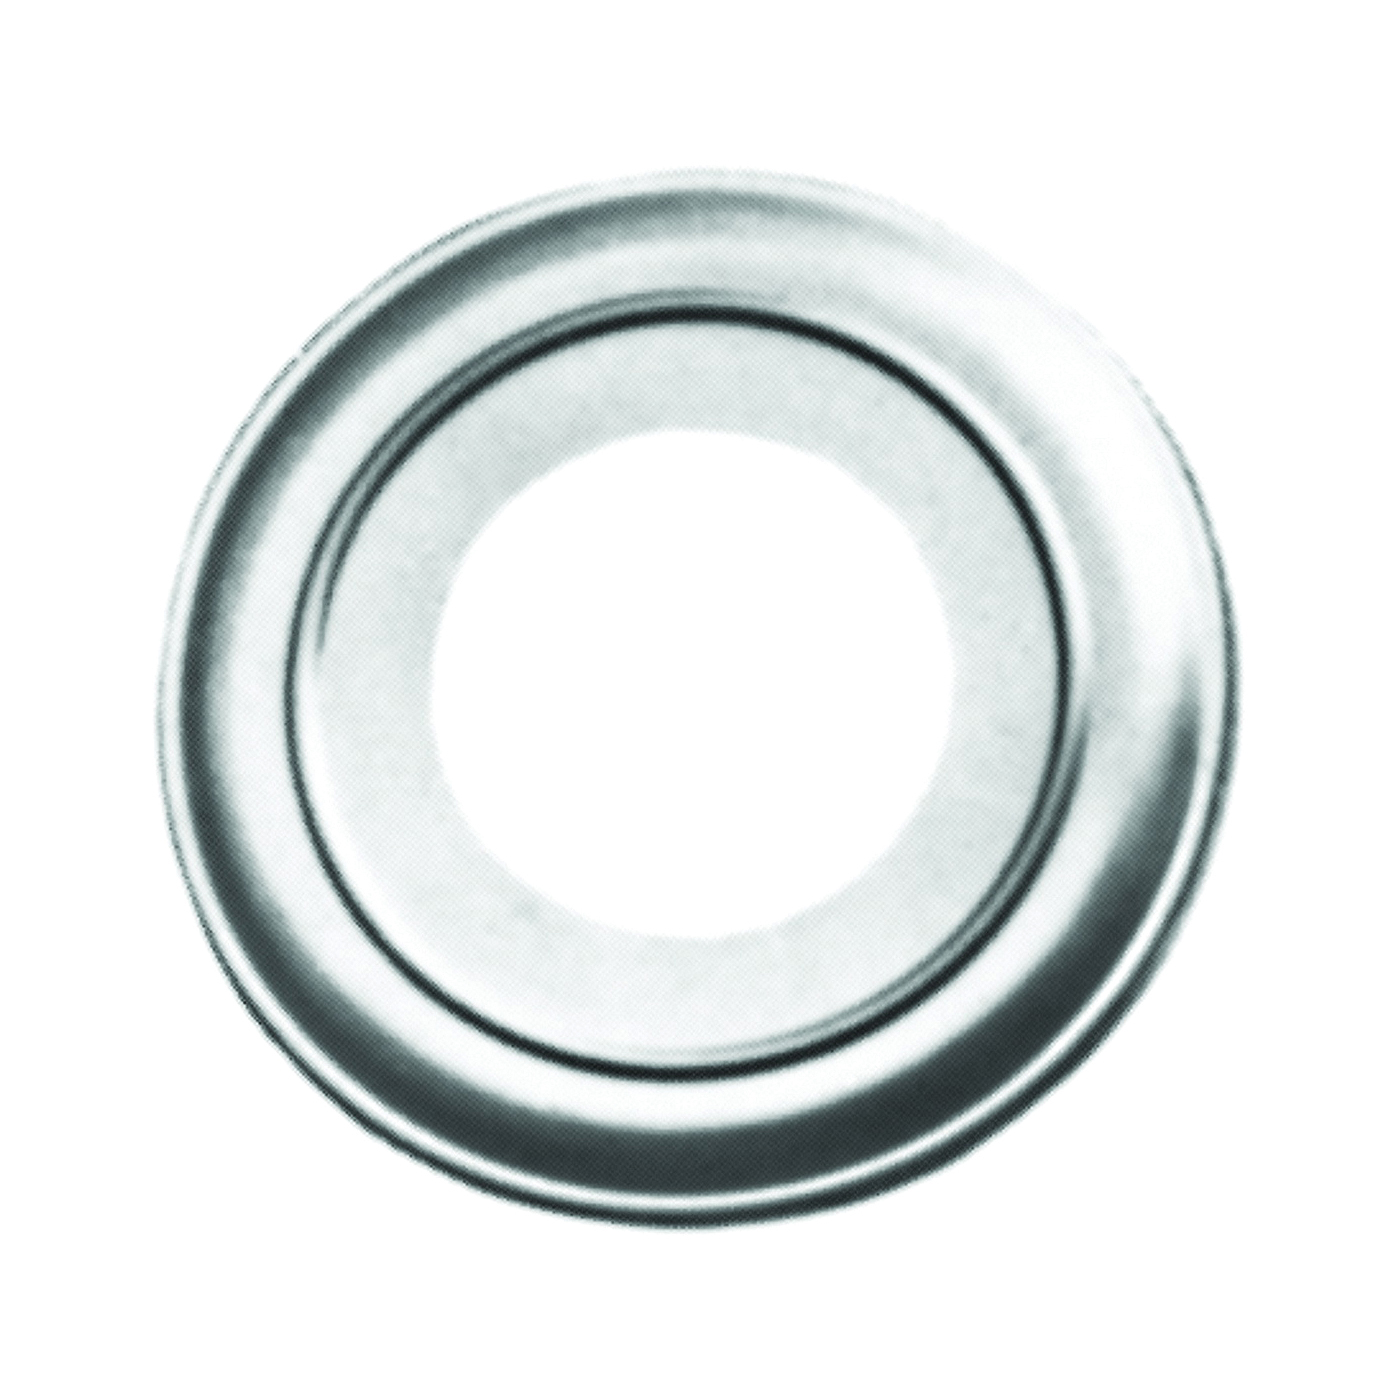 Picture of AmeriVent 3EVC Vent Collar, 3 in Vent Hole, Galvanized Steel